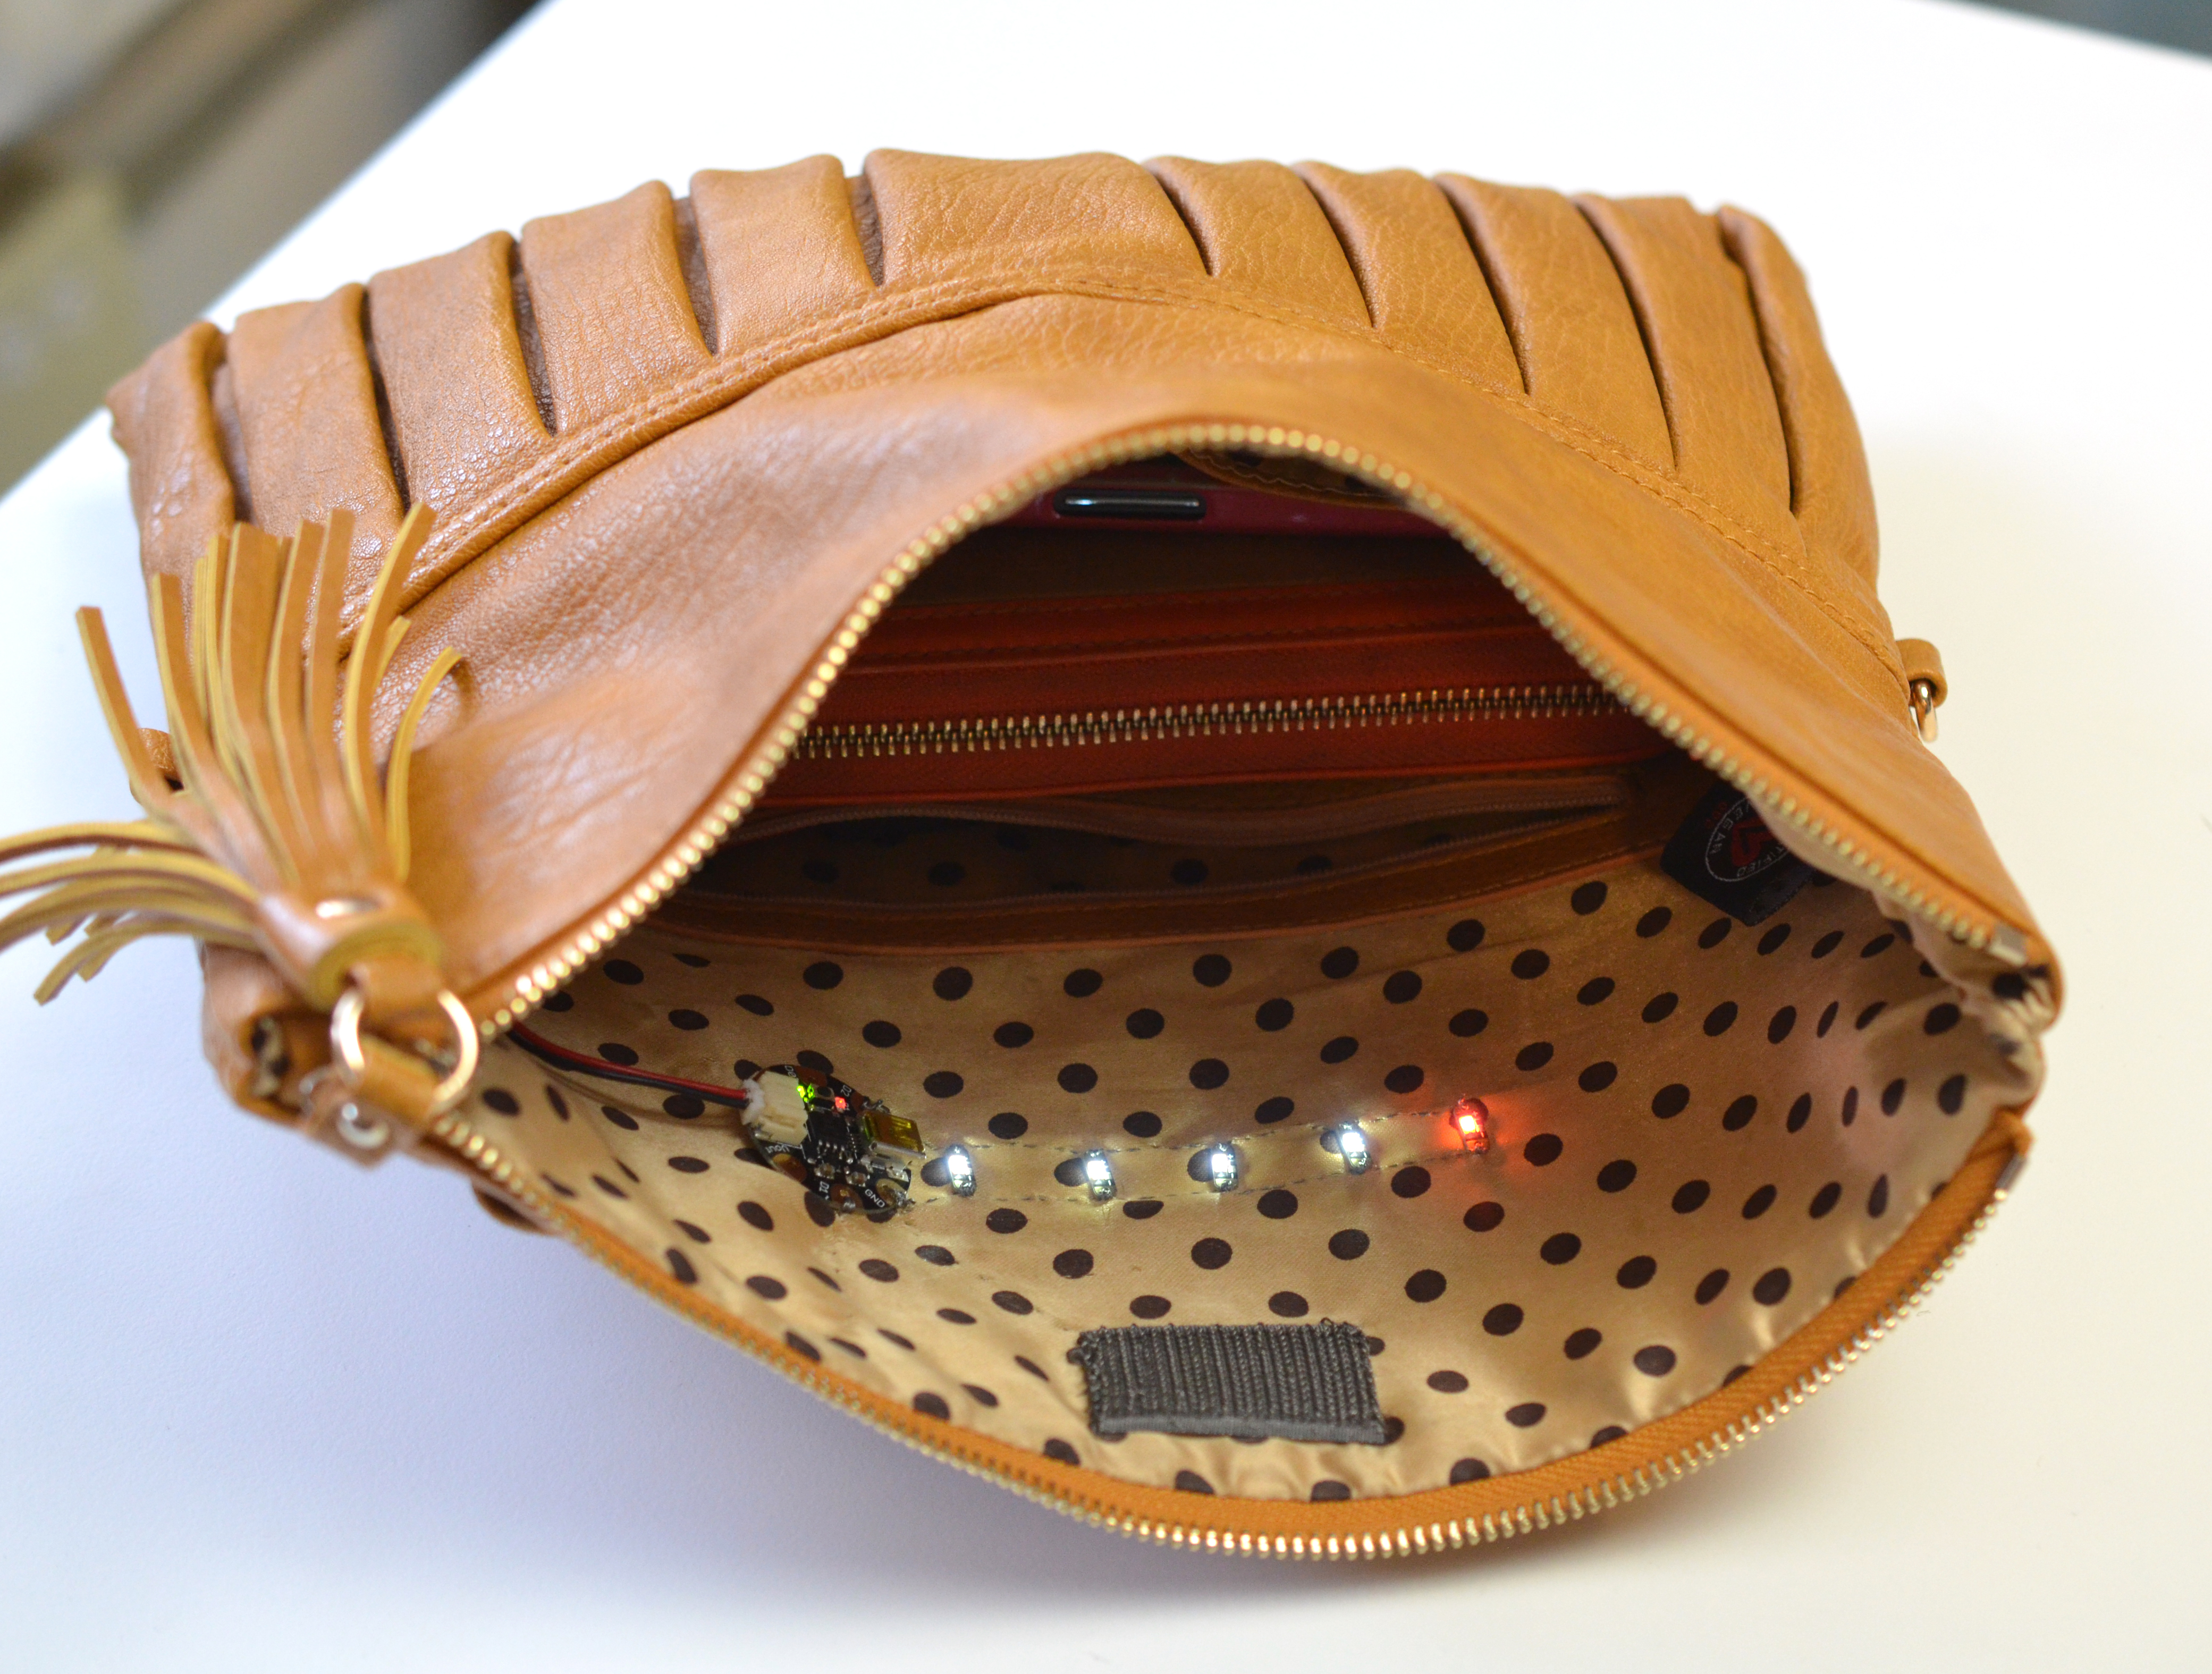 interior-purse-light-19